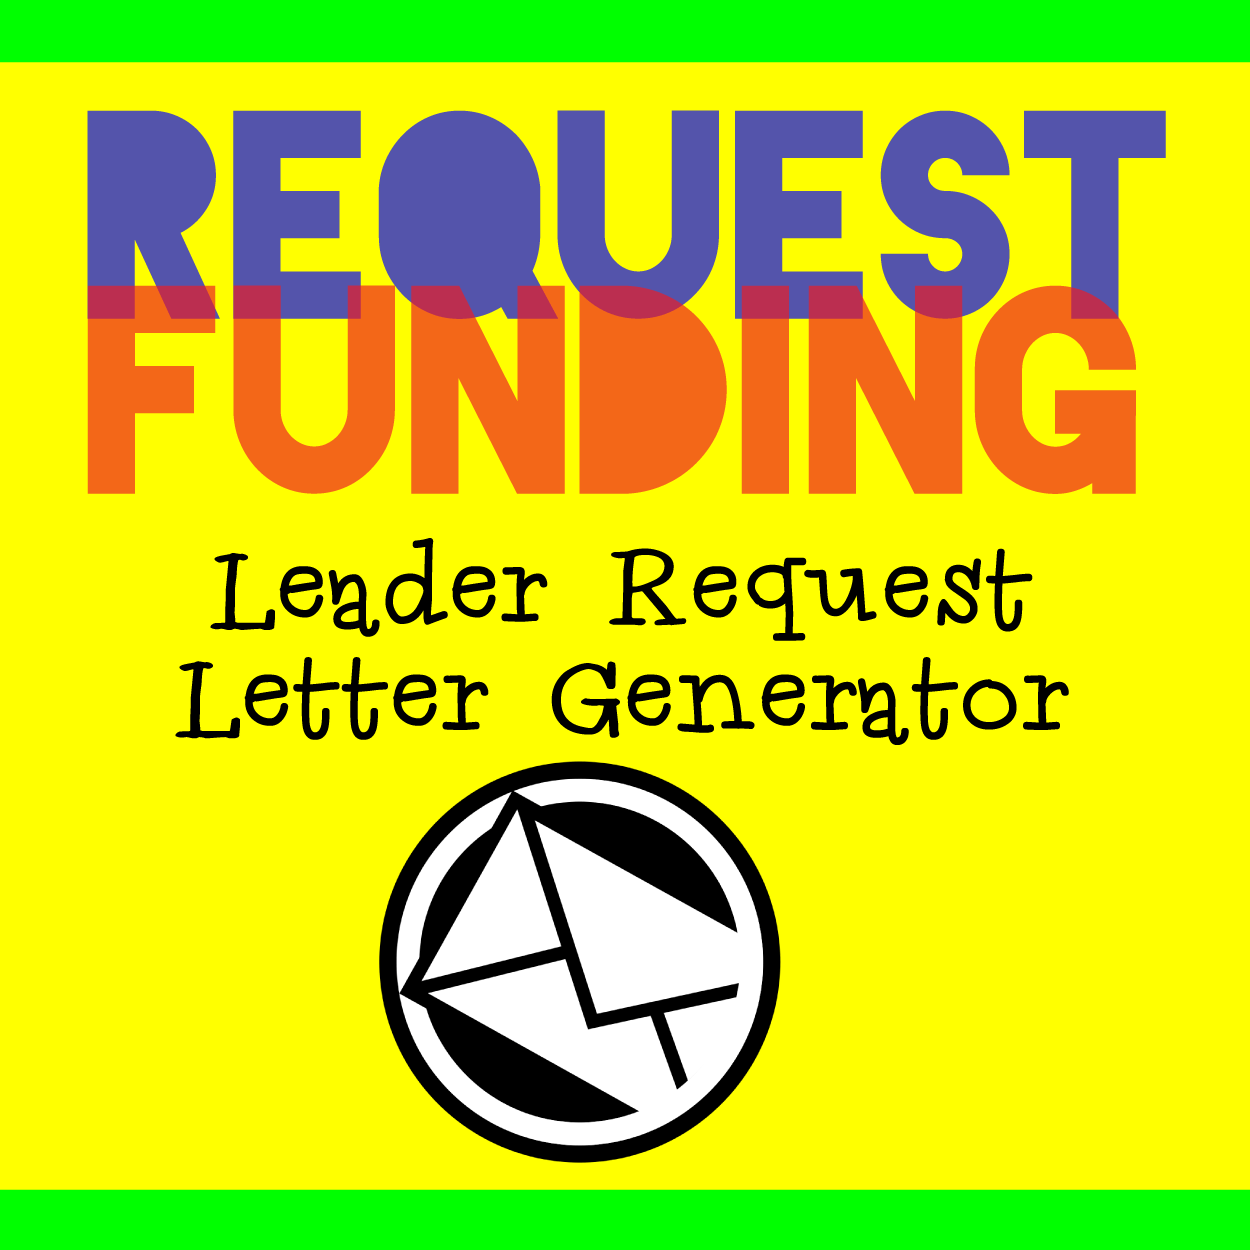 Request Funding